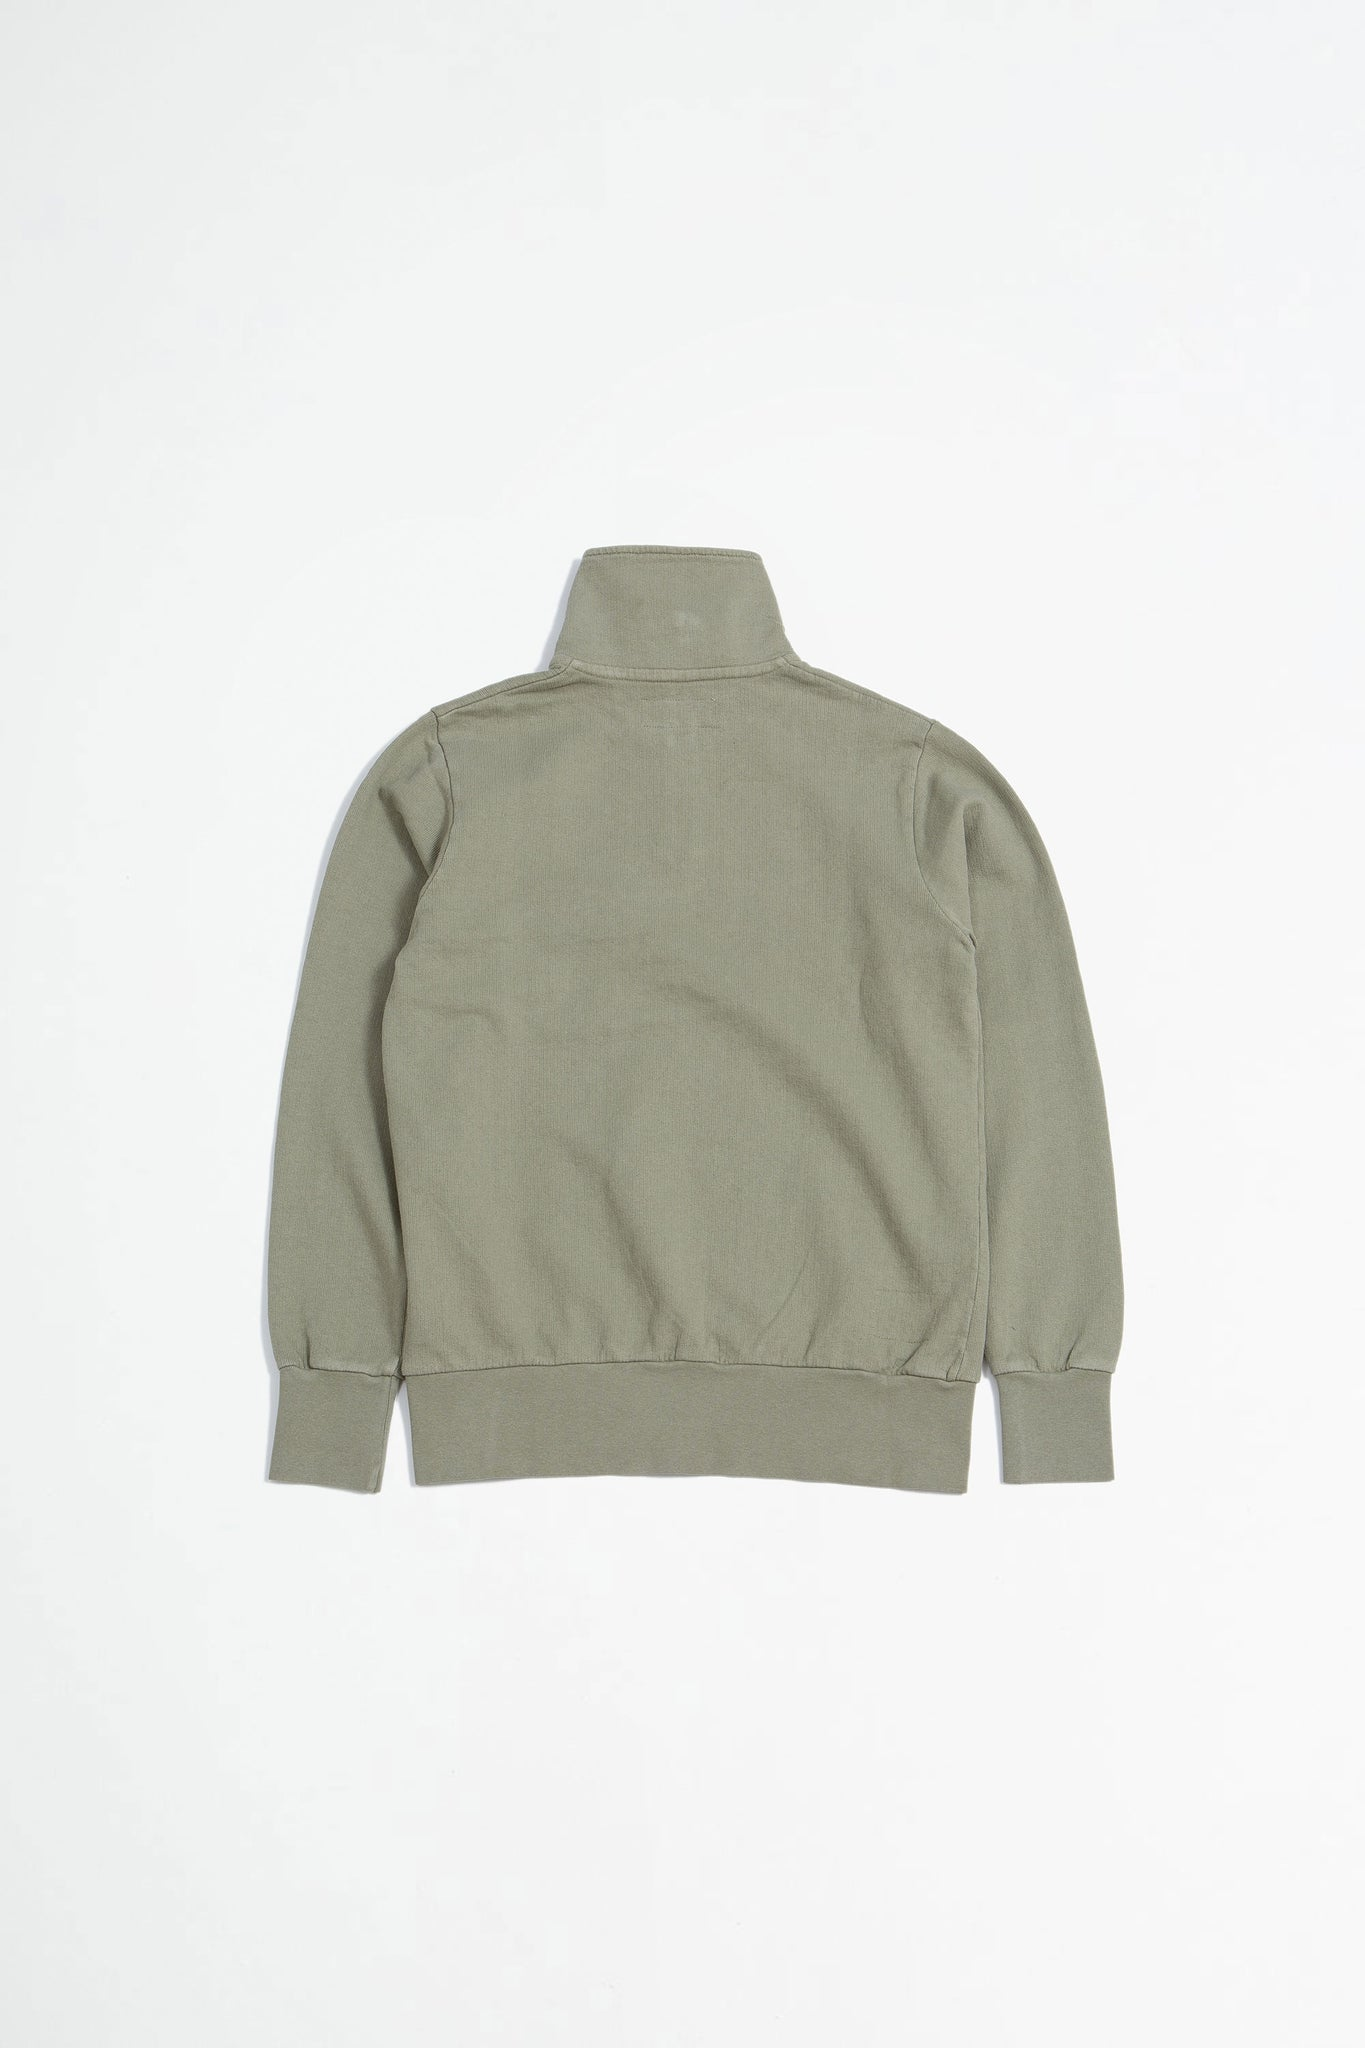 Half zip sweatshirt laurel